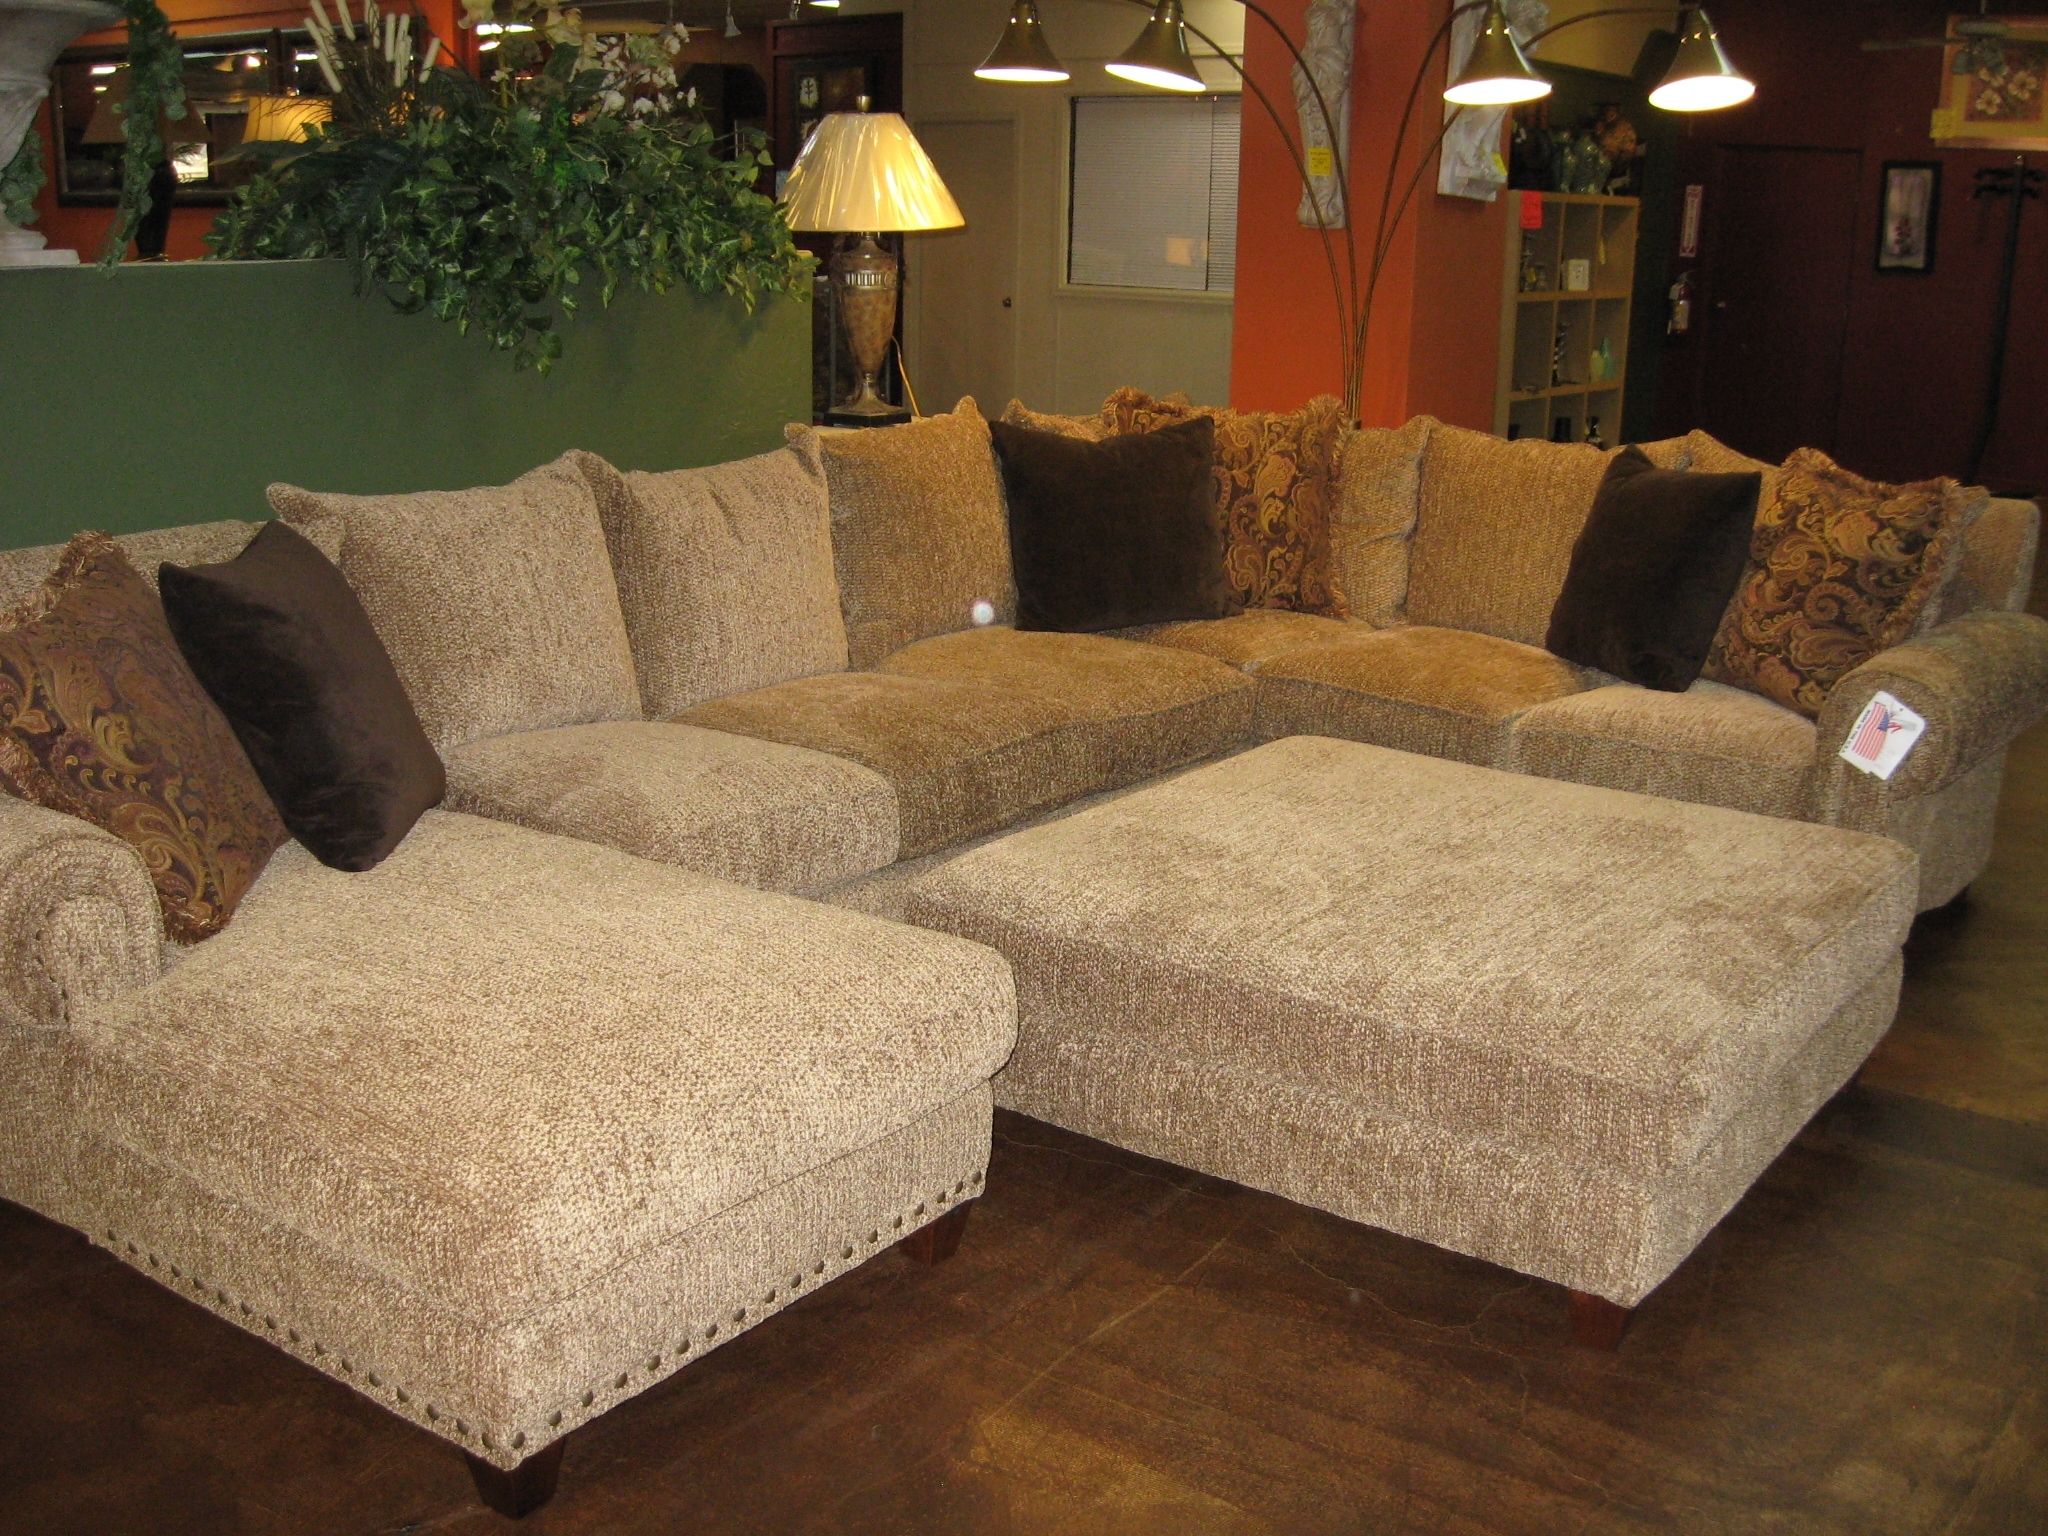 Sectional Sofa With Chaise And Ottoman – Hotelsbacau Regarding Sofas With Chaise And Ottoman (View 7 of 10)